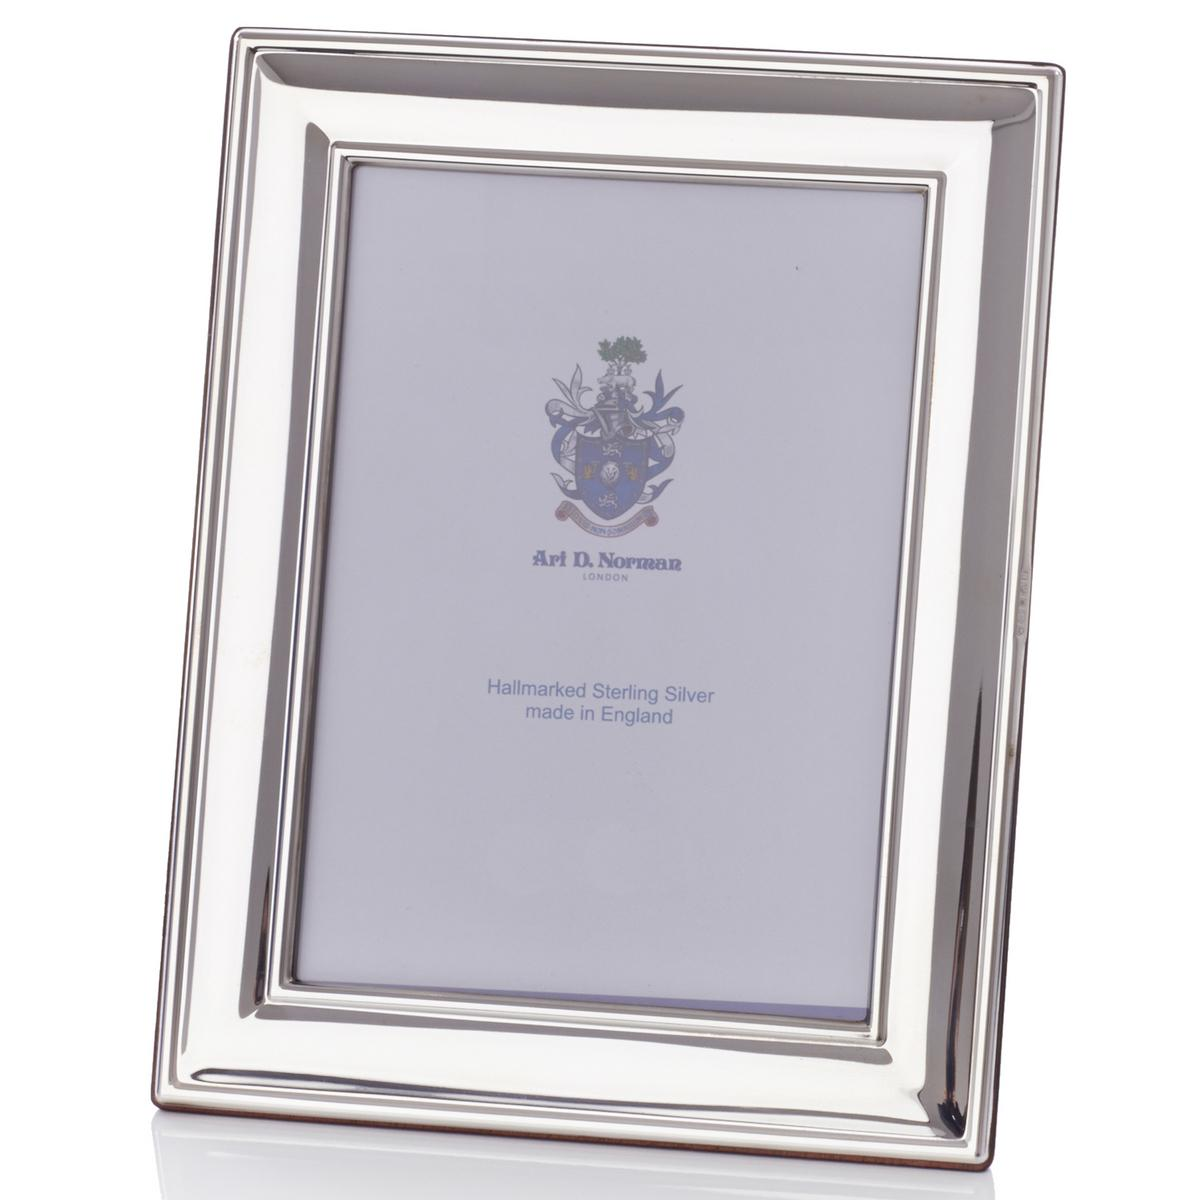 Classic Sterling silver picture frame, approx. 20 x 25 cm (8\'\' x 10 ...